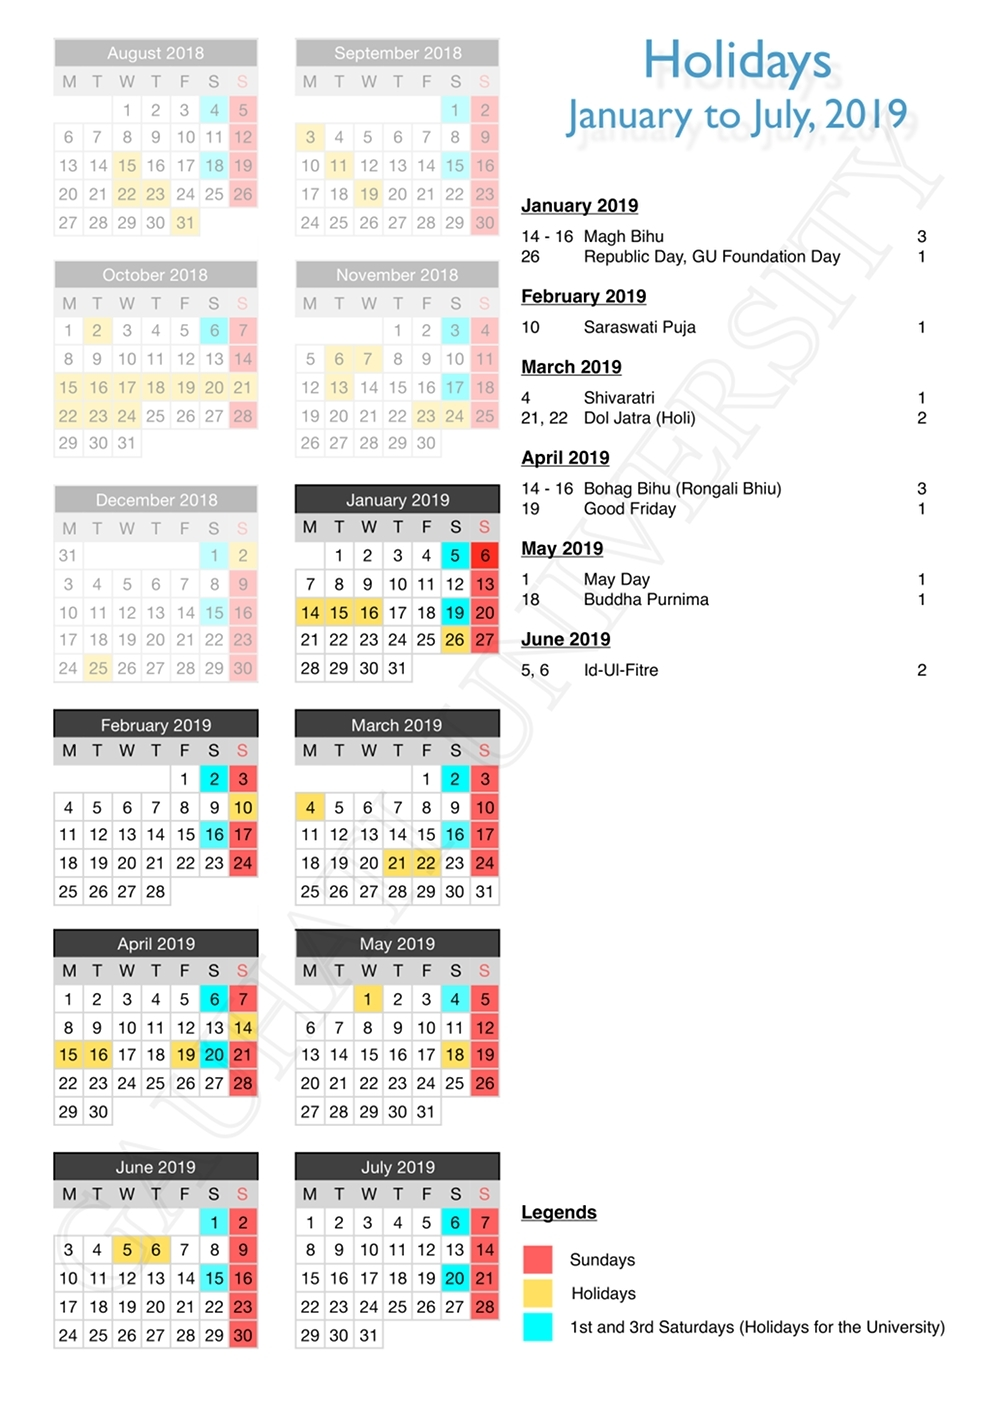 Exceptional U Of H School Calendar 2019 • Printable Blank Calendar_U Of H School Calendar